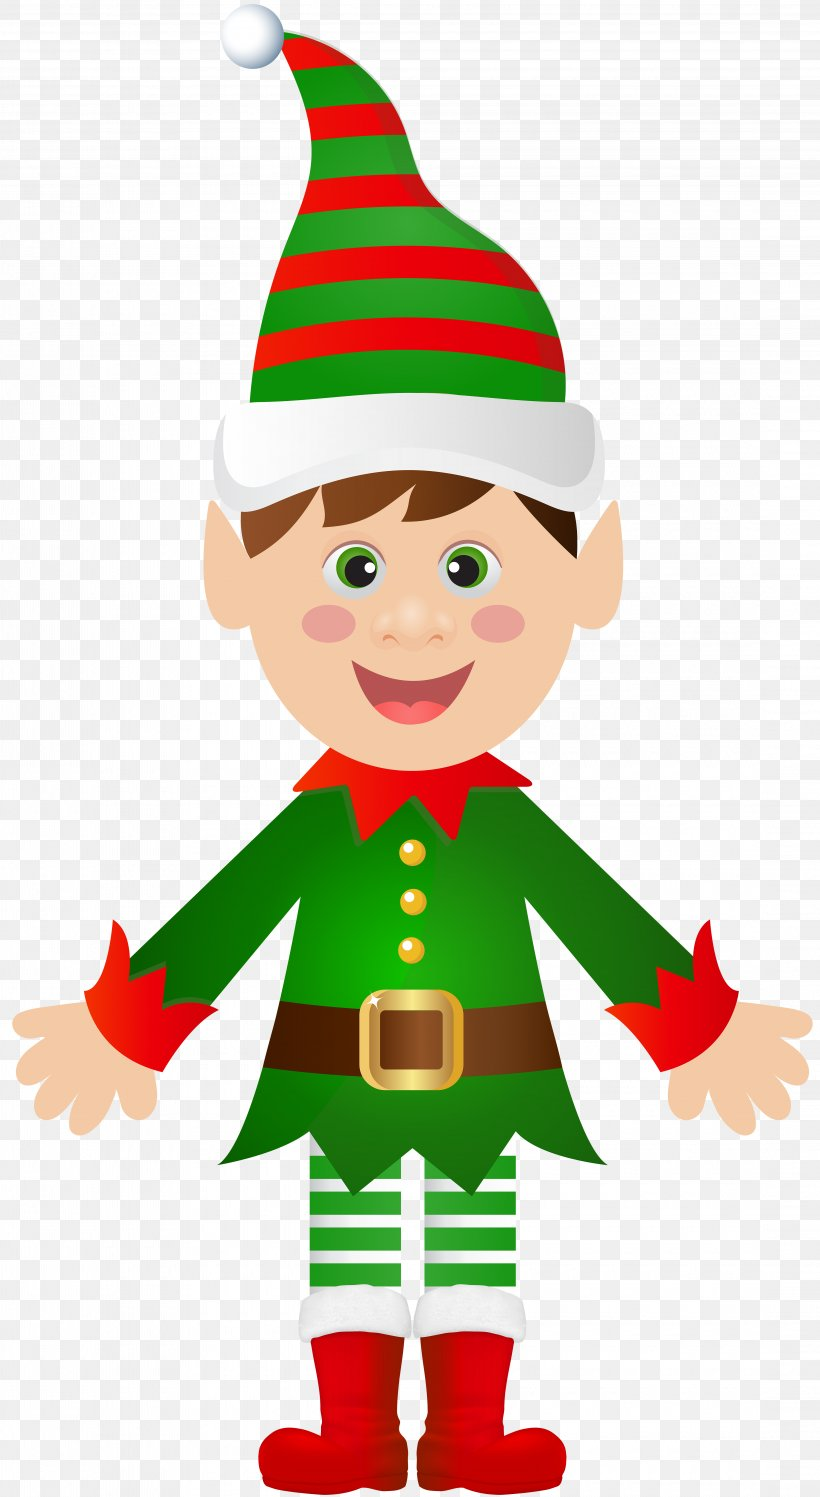 Santa Claus Christmas Tree Christmas Elf Clip Art, PNG.